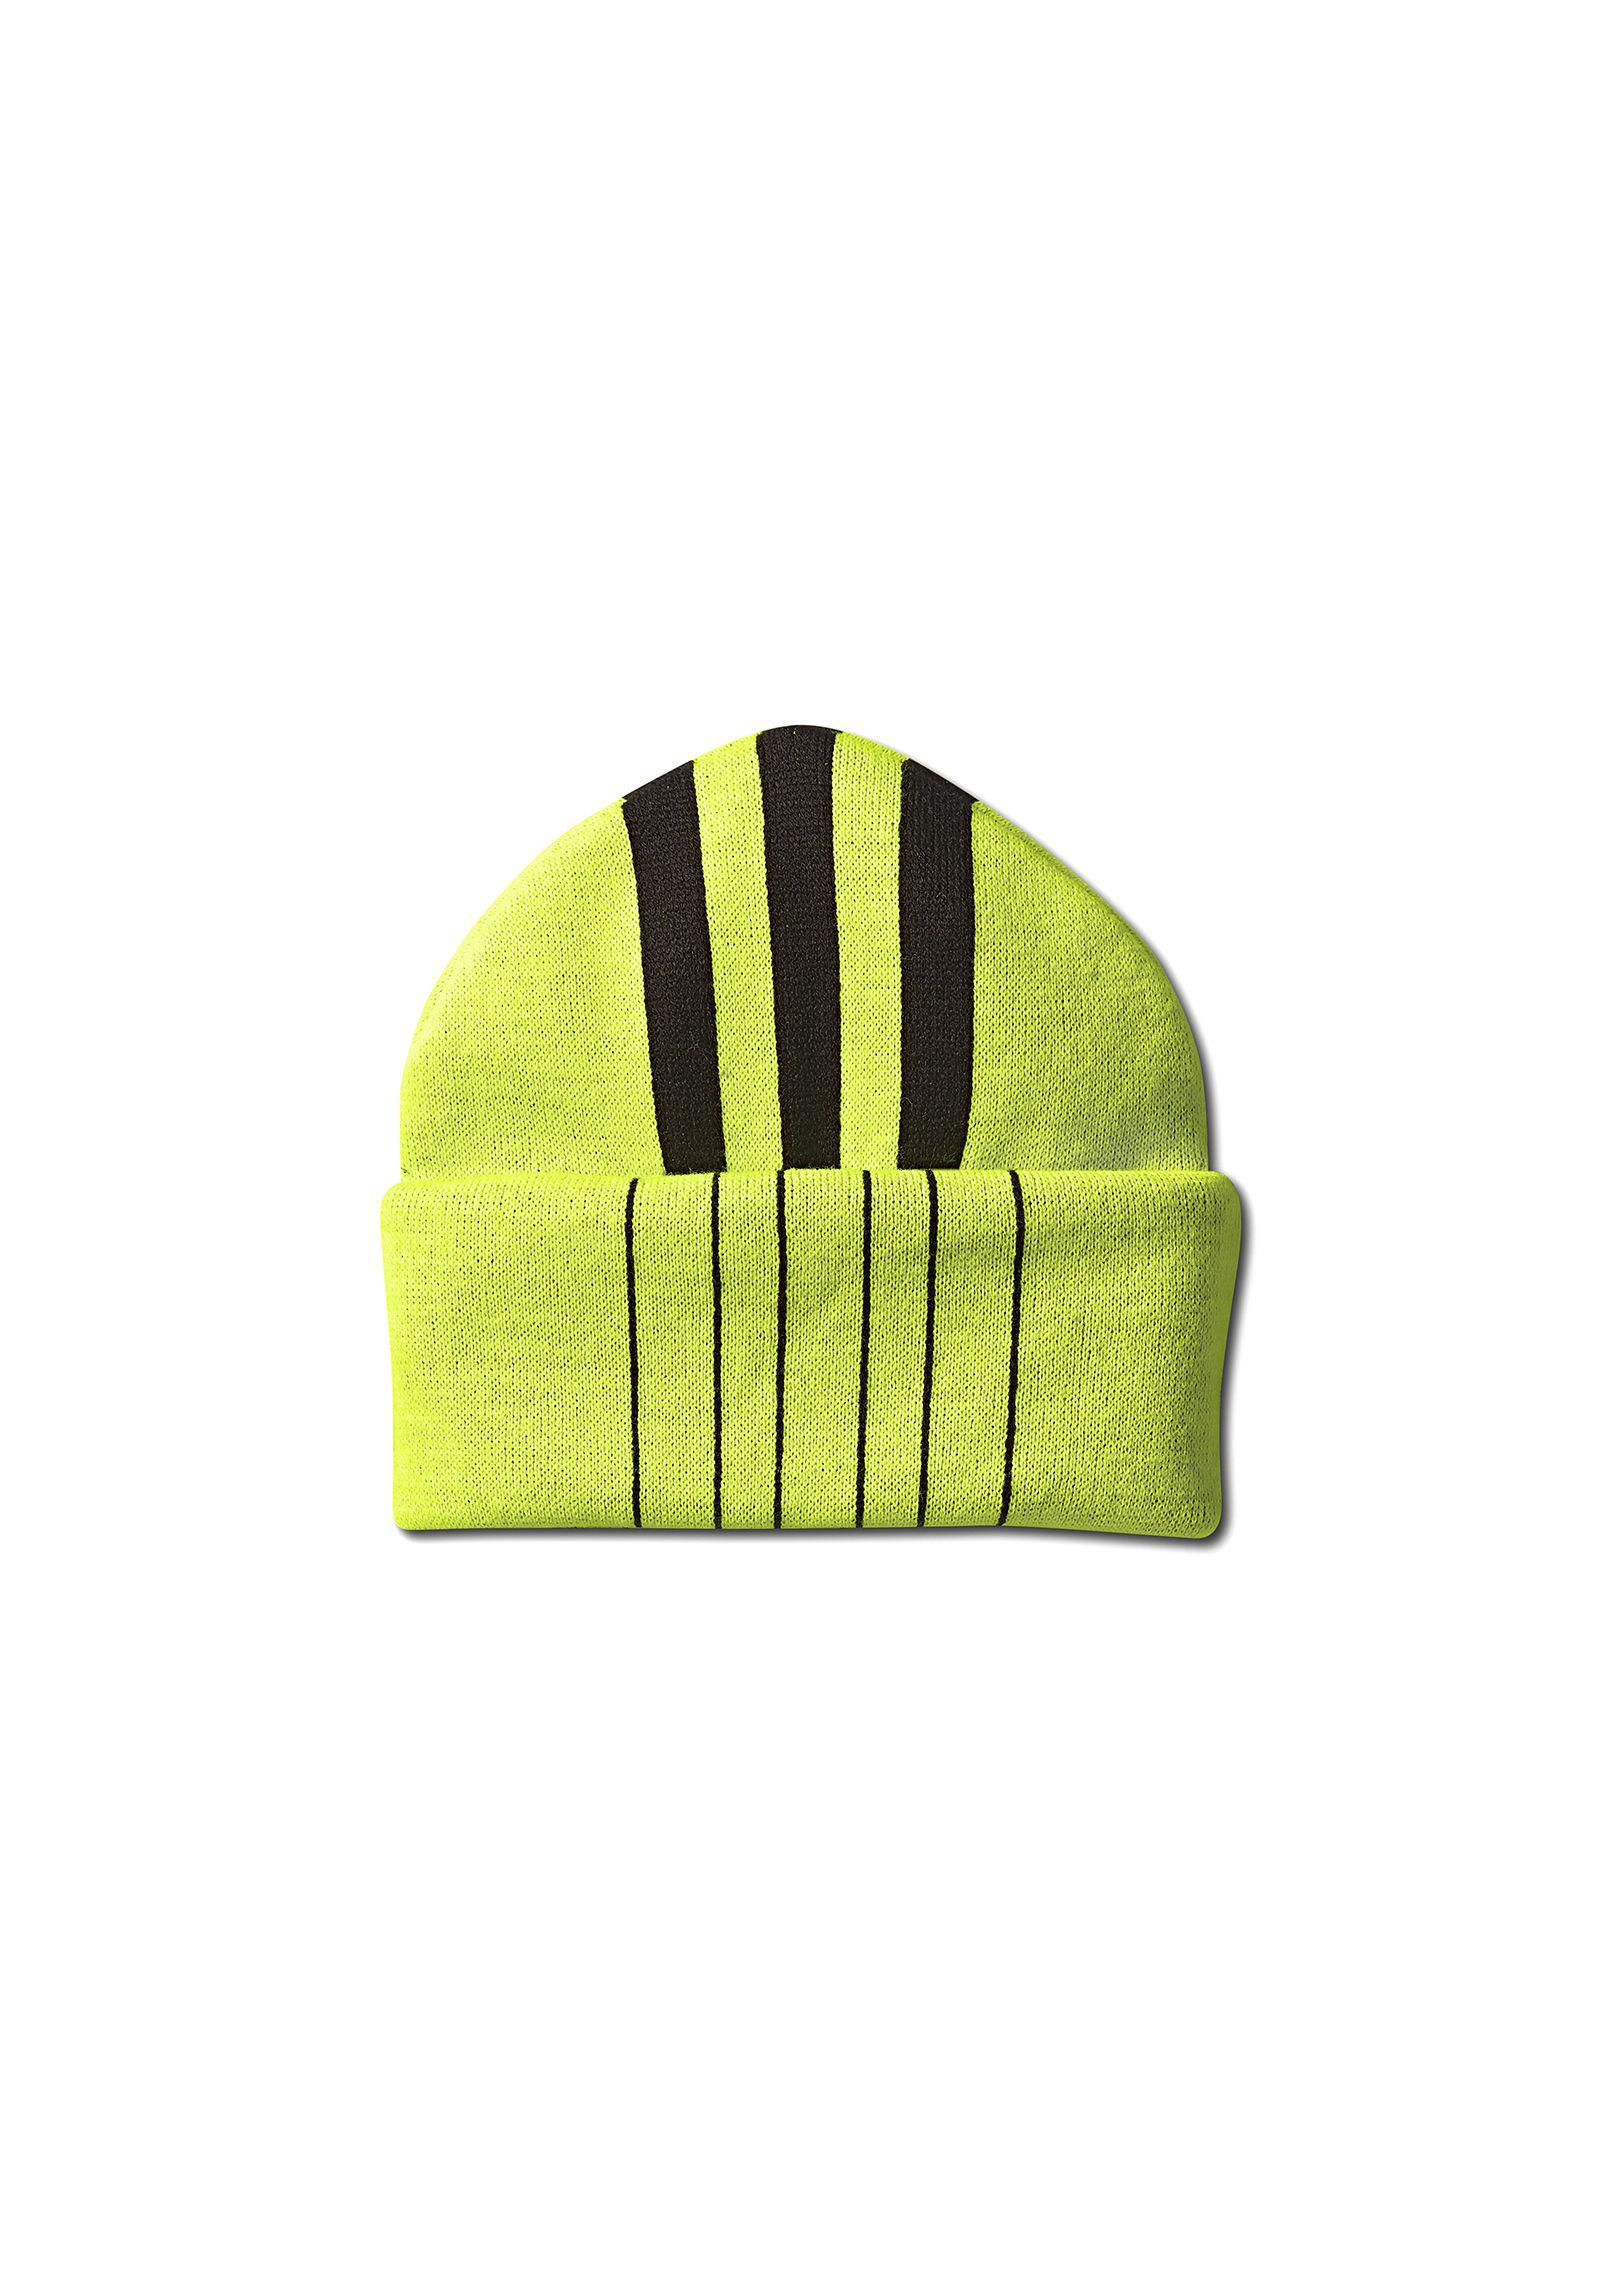 Lyst - Alexander Wang Adidas Originals By Aw Mask Beanie in Yellow ... 1a18fa86c5cf